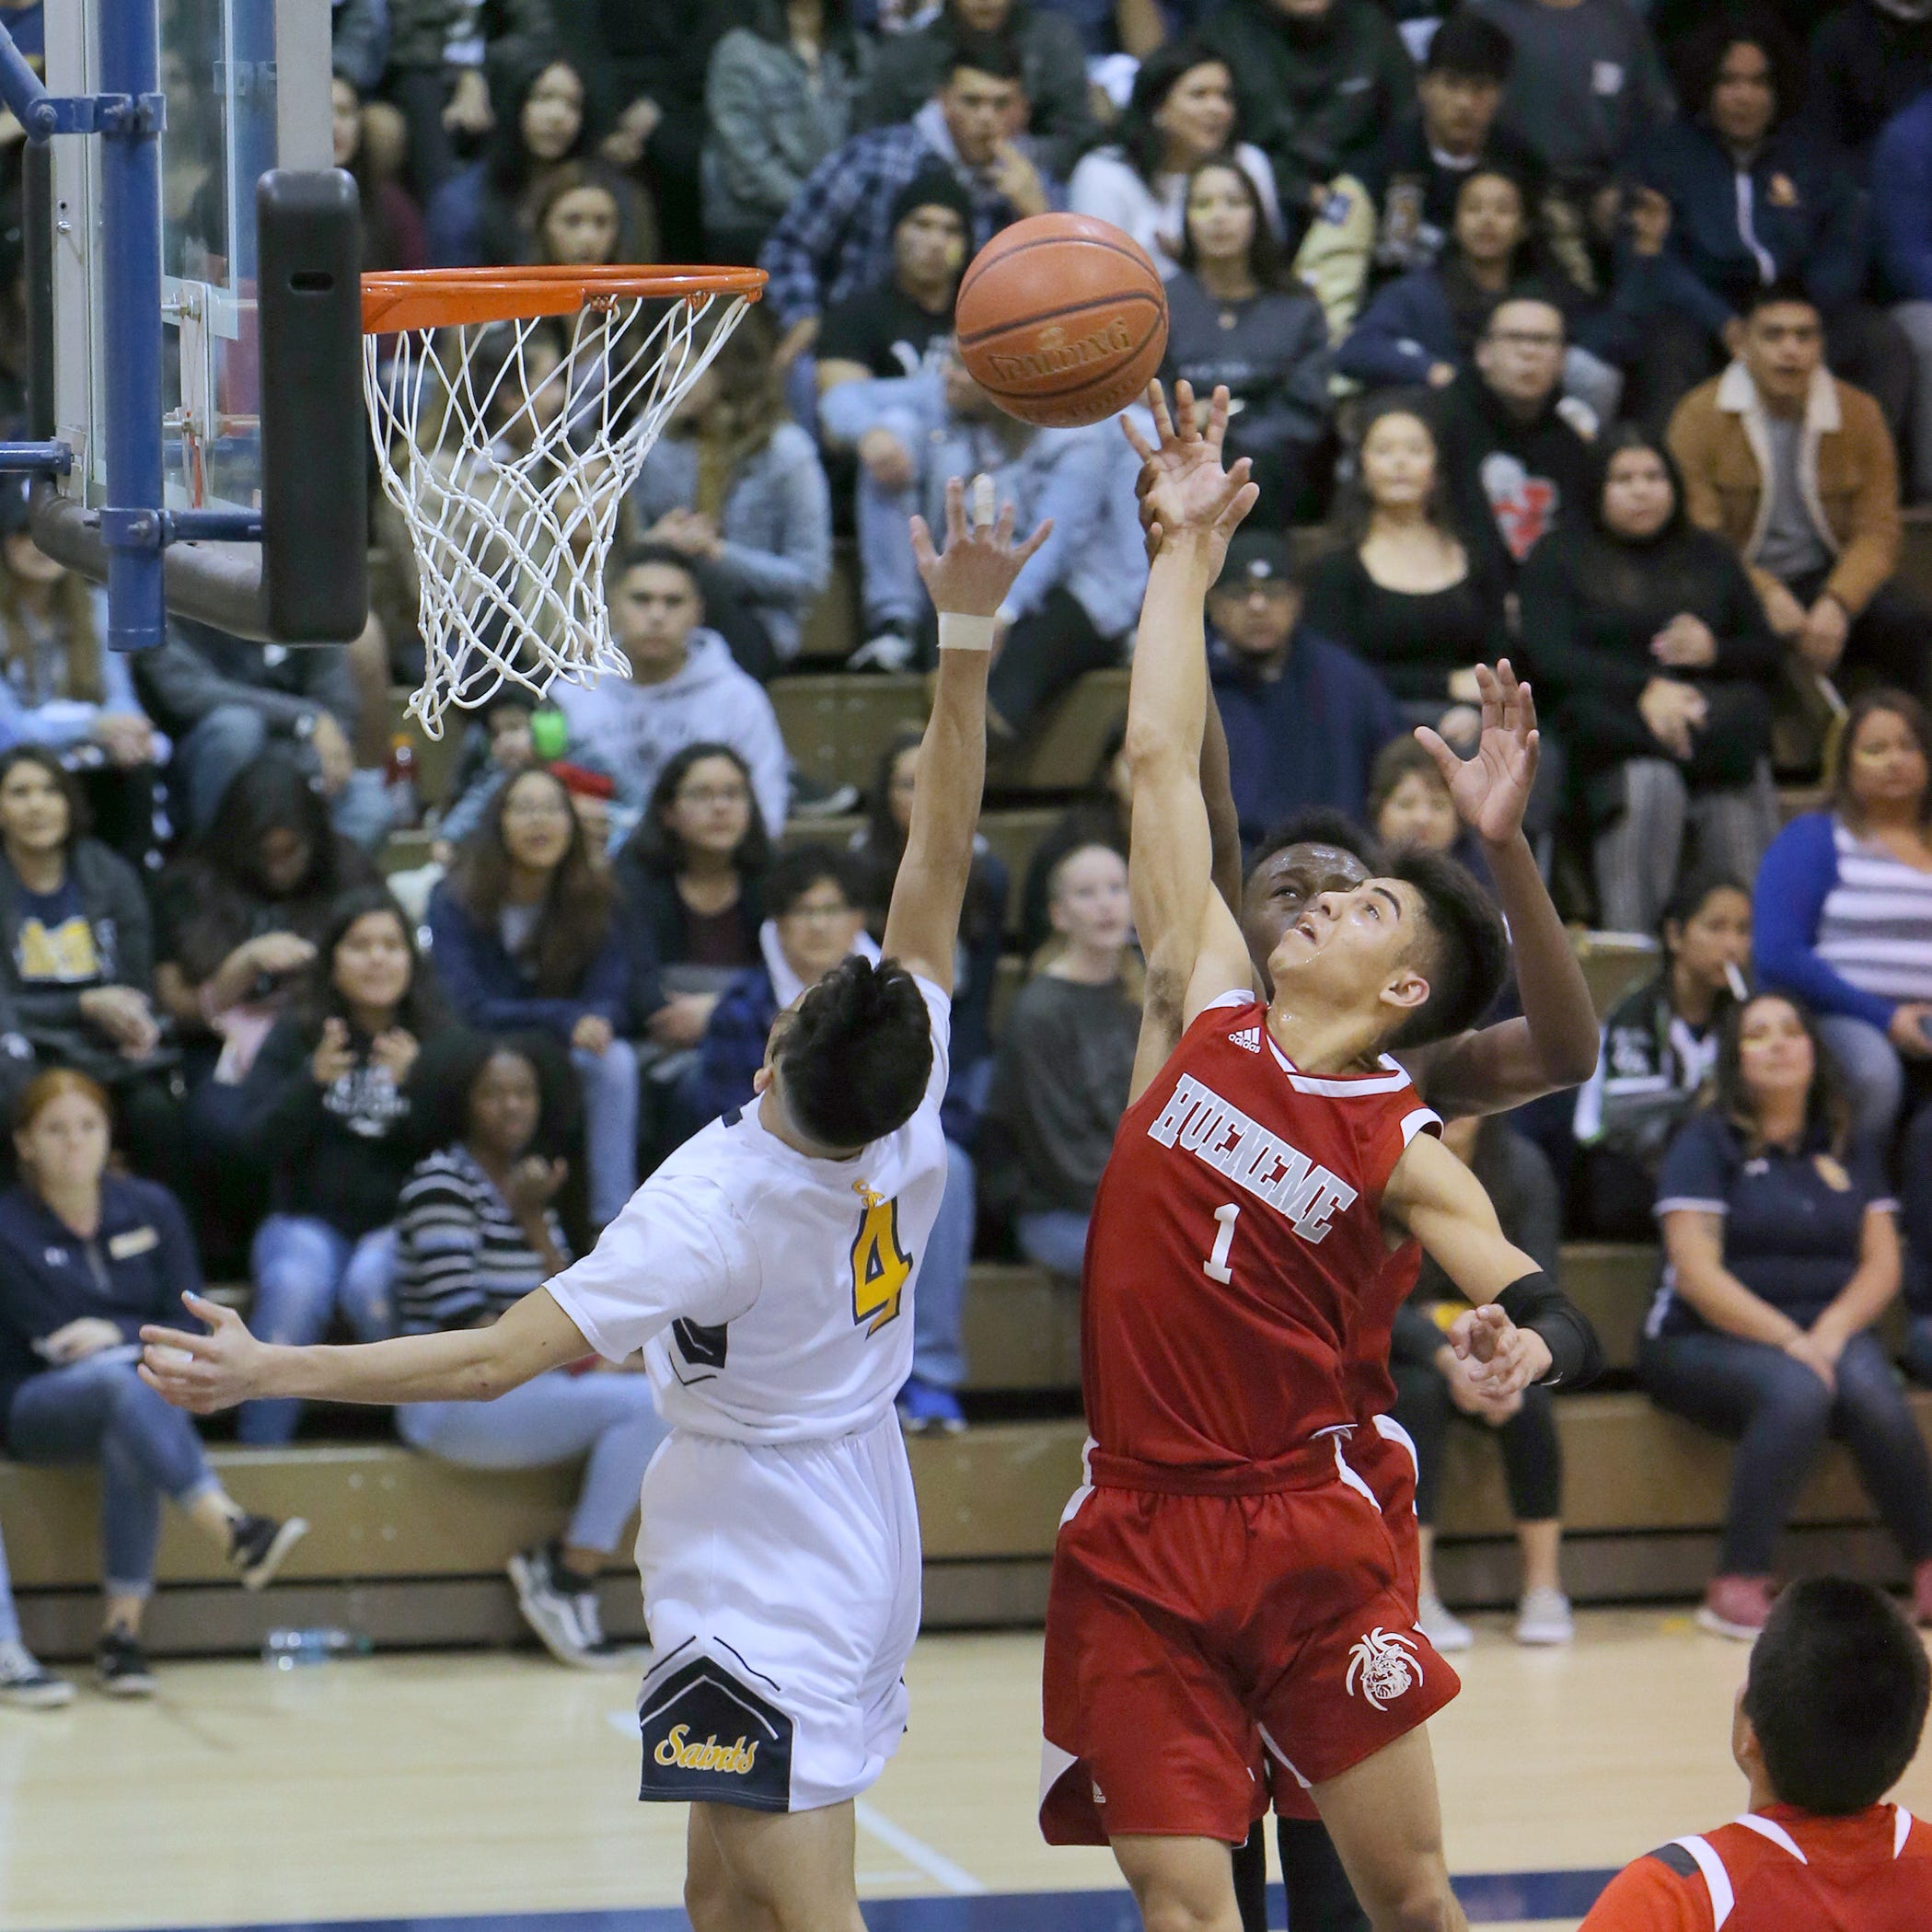 Hueneme's Ayala, McCaskill named basketball MVPs of Citrus Coast League